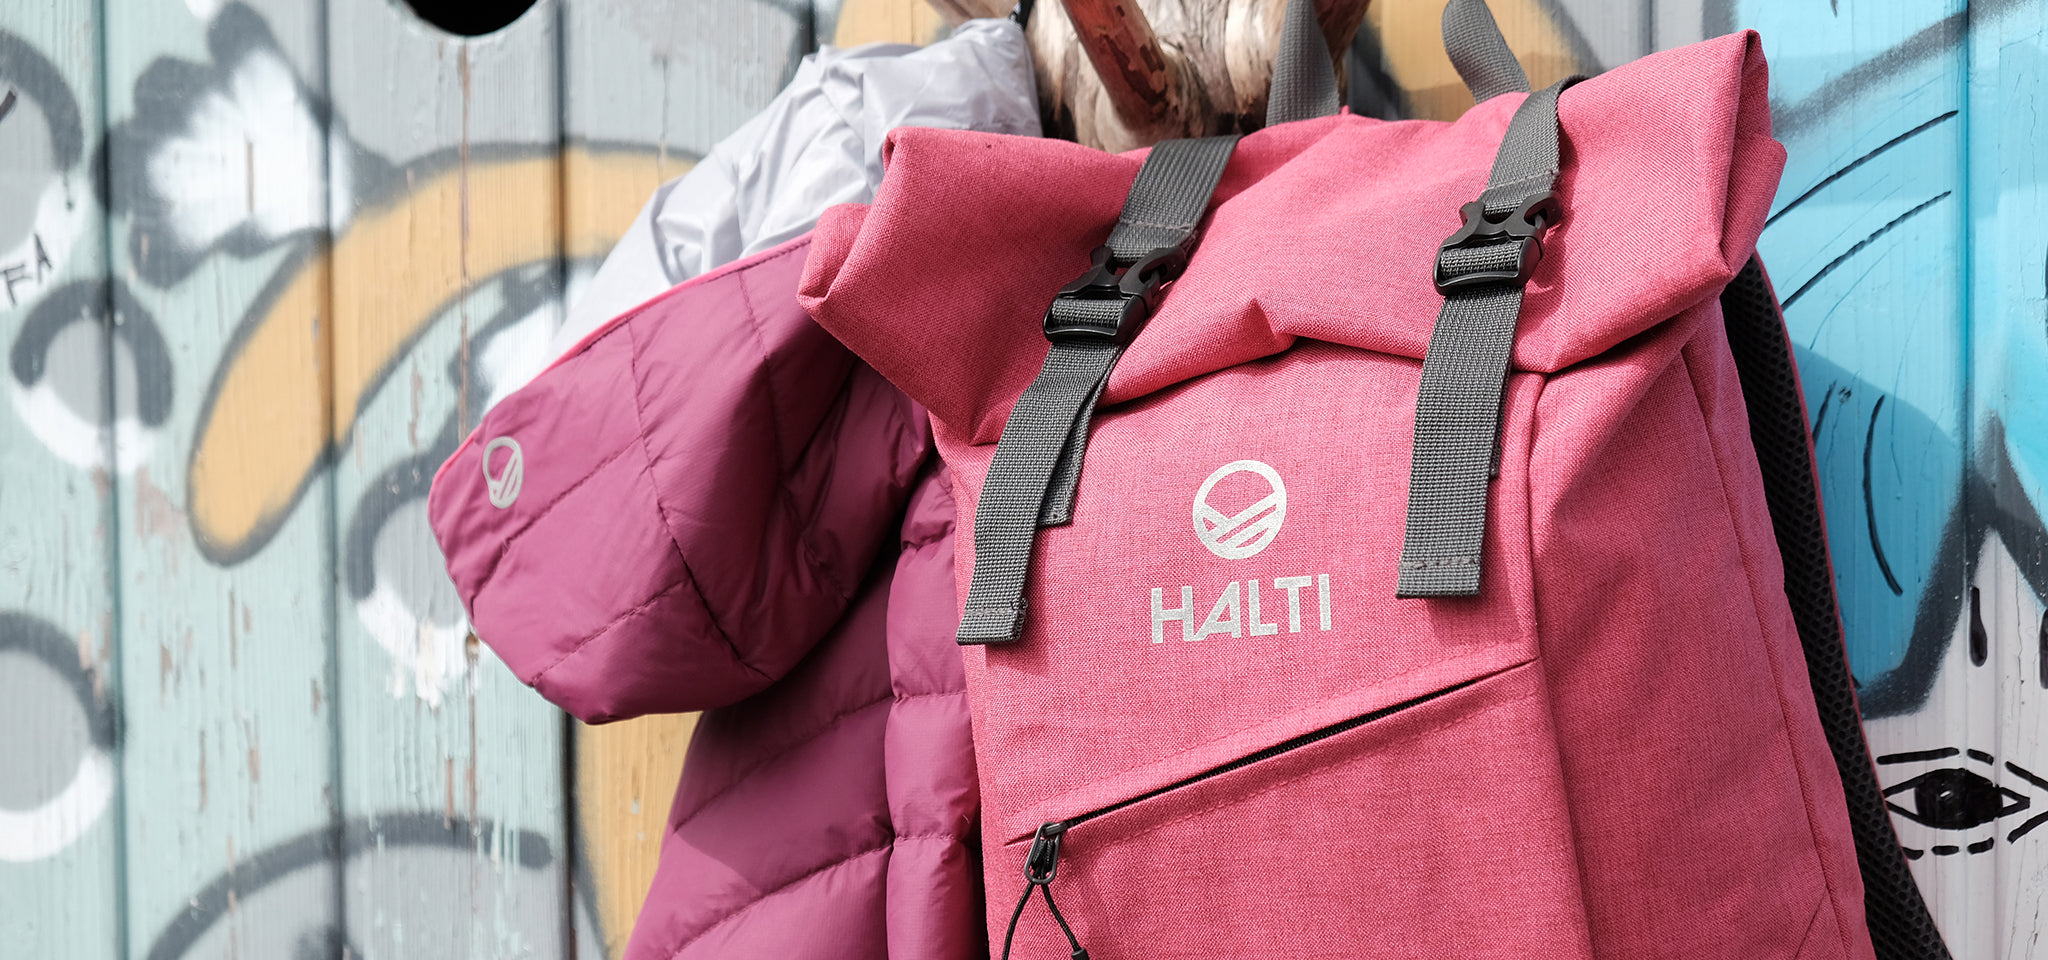 Halti backpacks